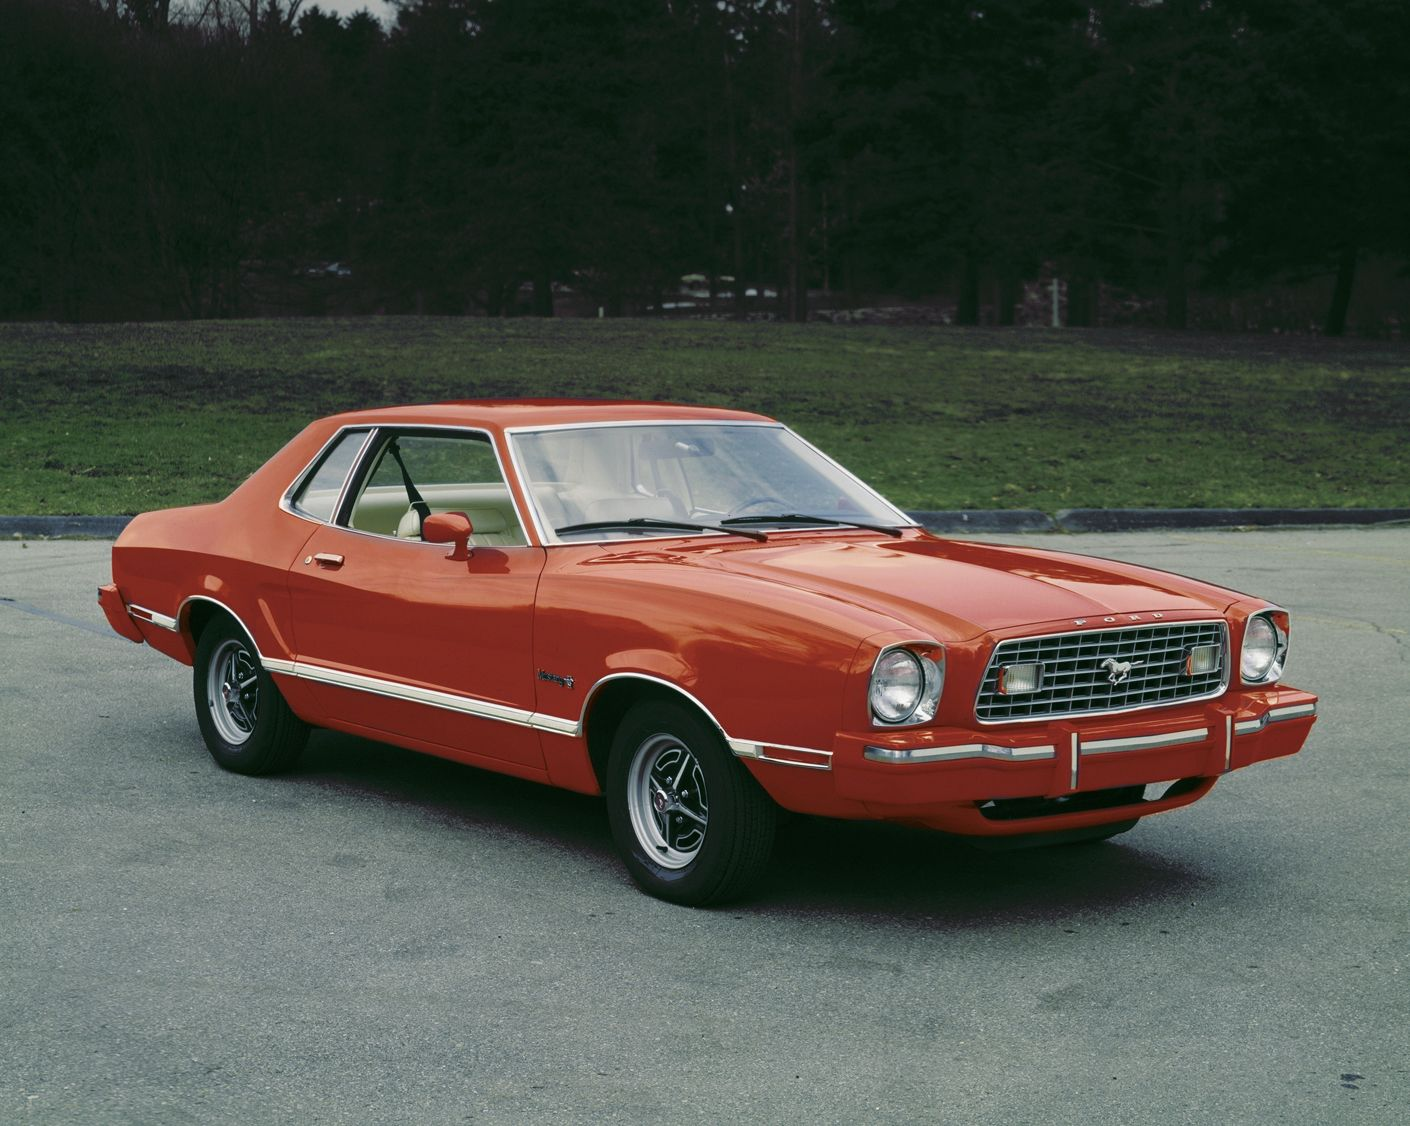 Fotos 1974 ford mustang 2nd gen 74 mustang for sale - 1974 Mustang Ii Coupe